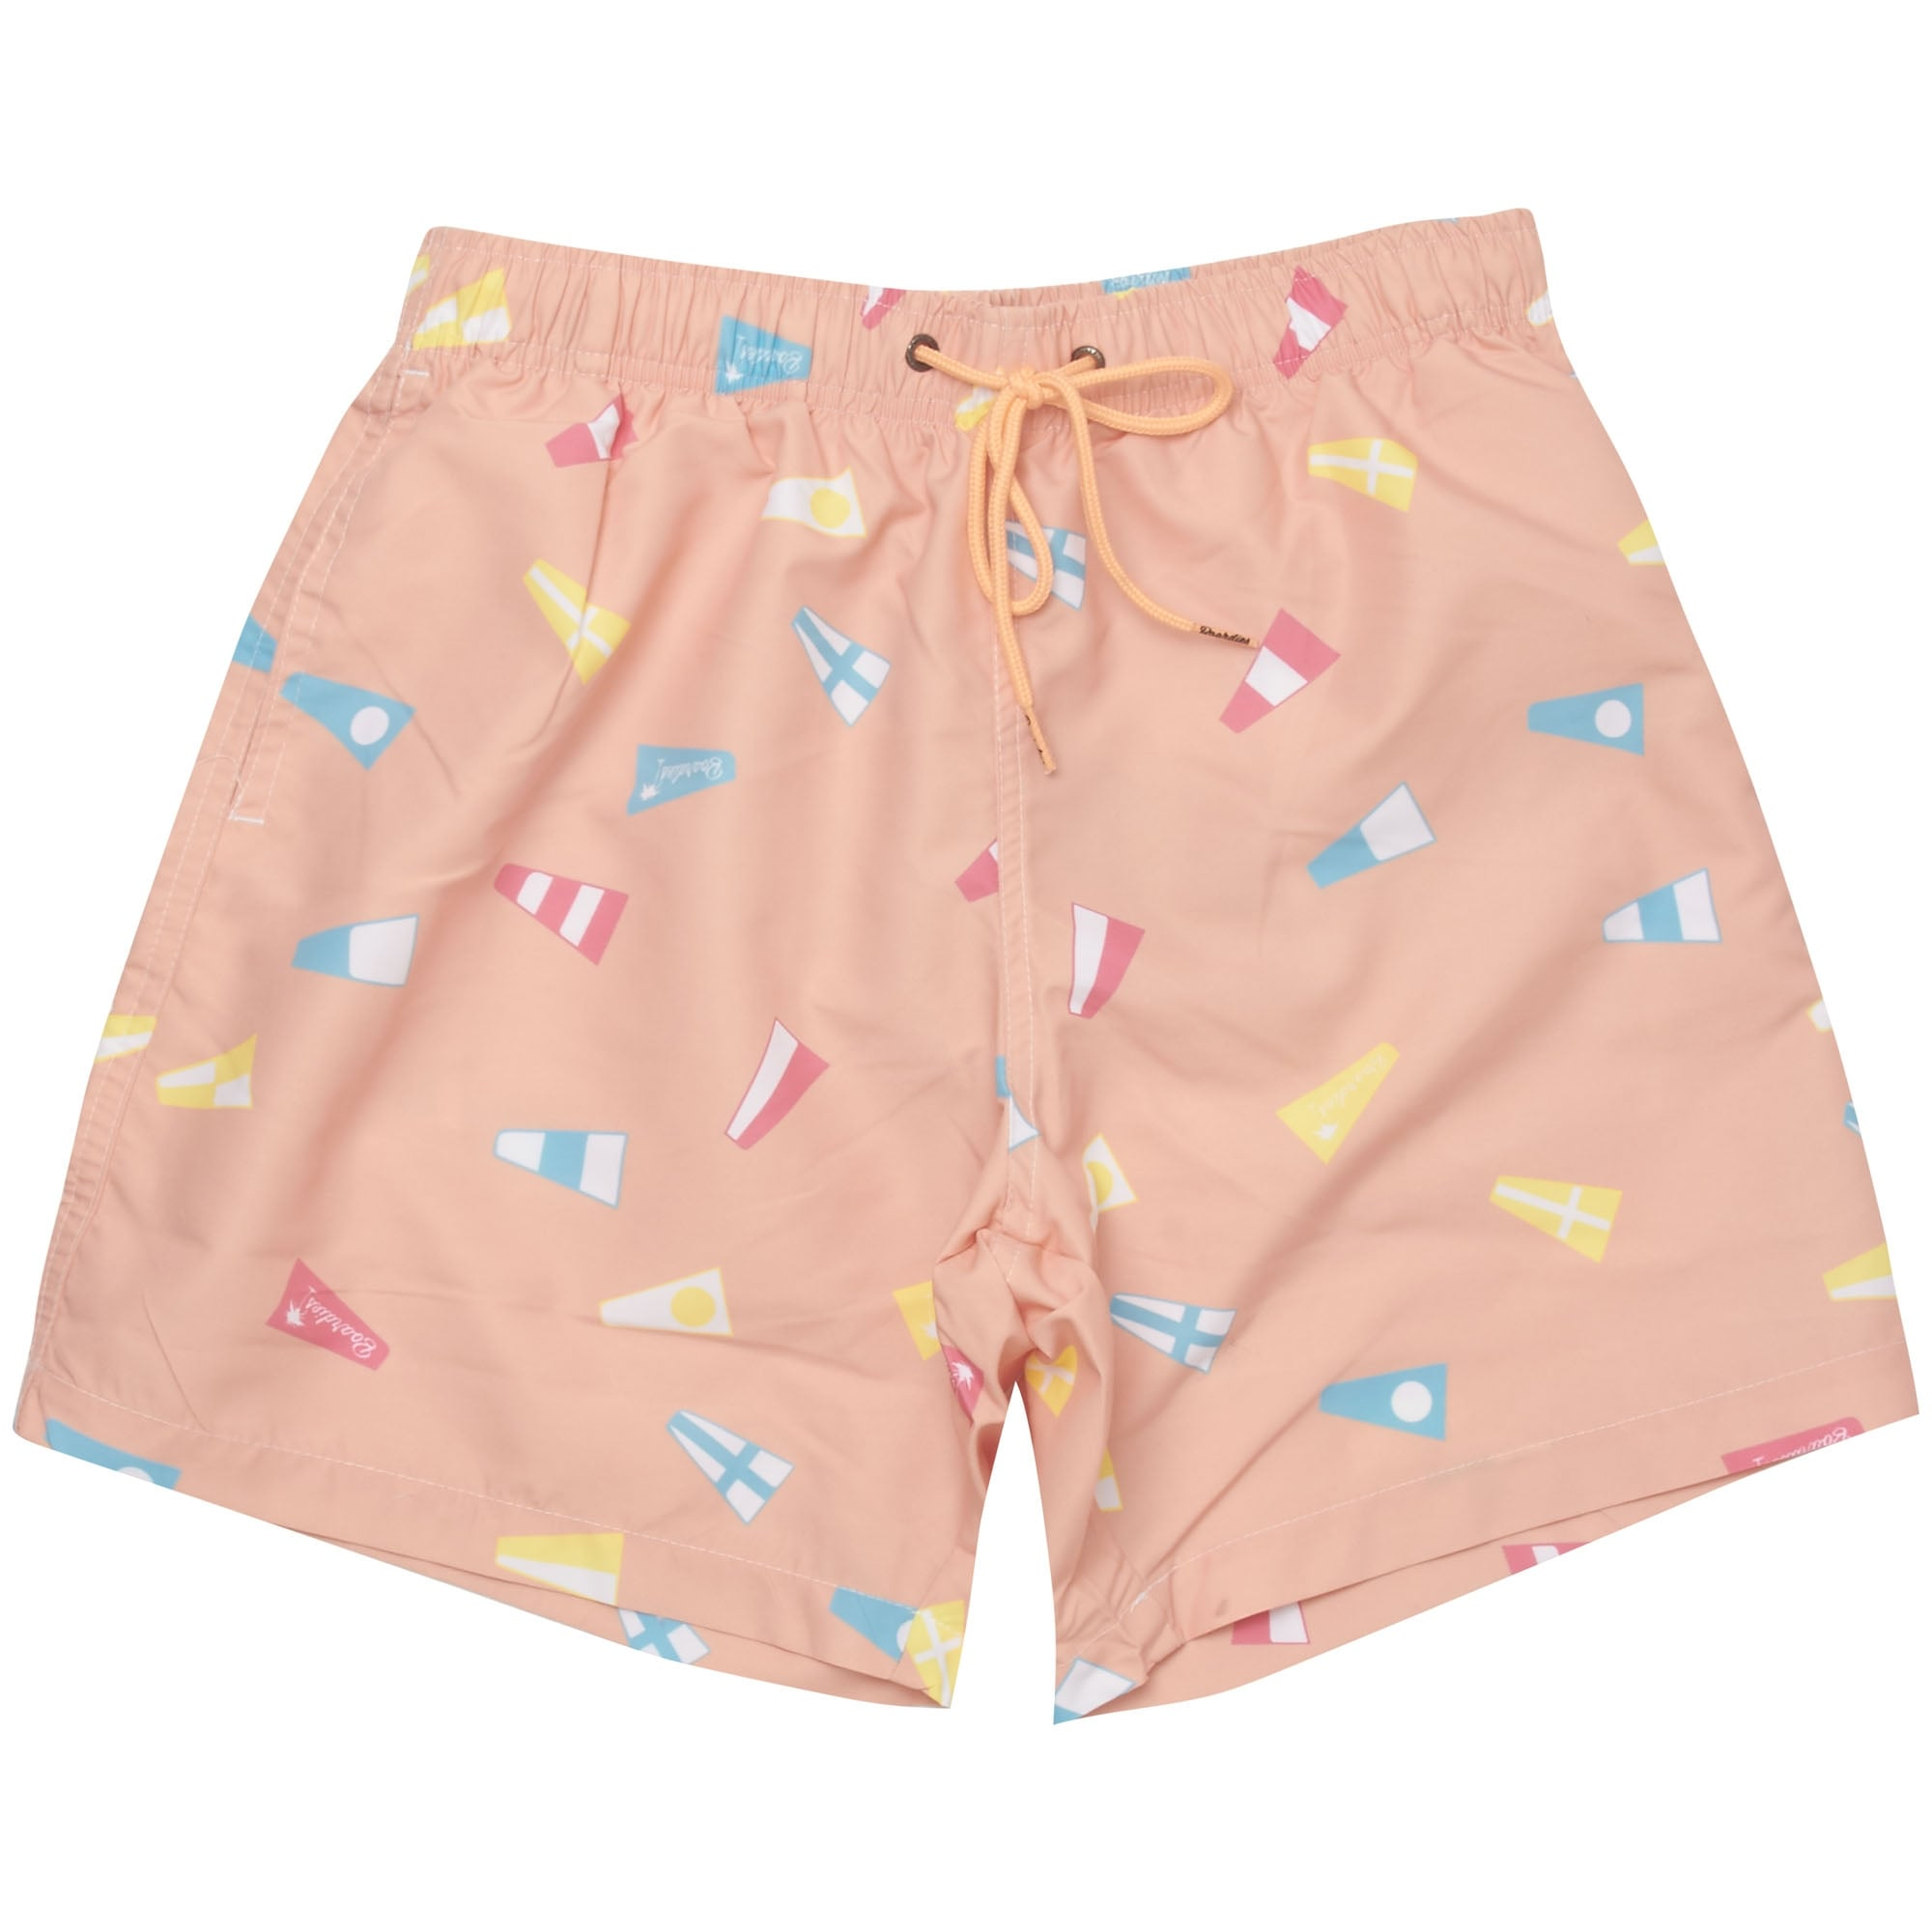 8bfac3e8bf Boardies® Nautical Flag Pink Swim Shorts at Stuarts London